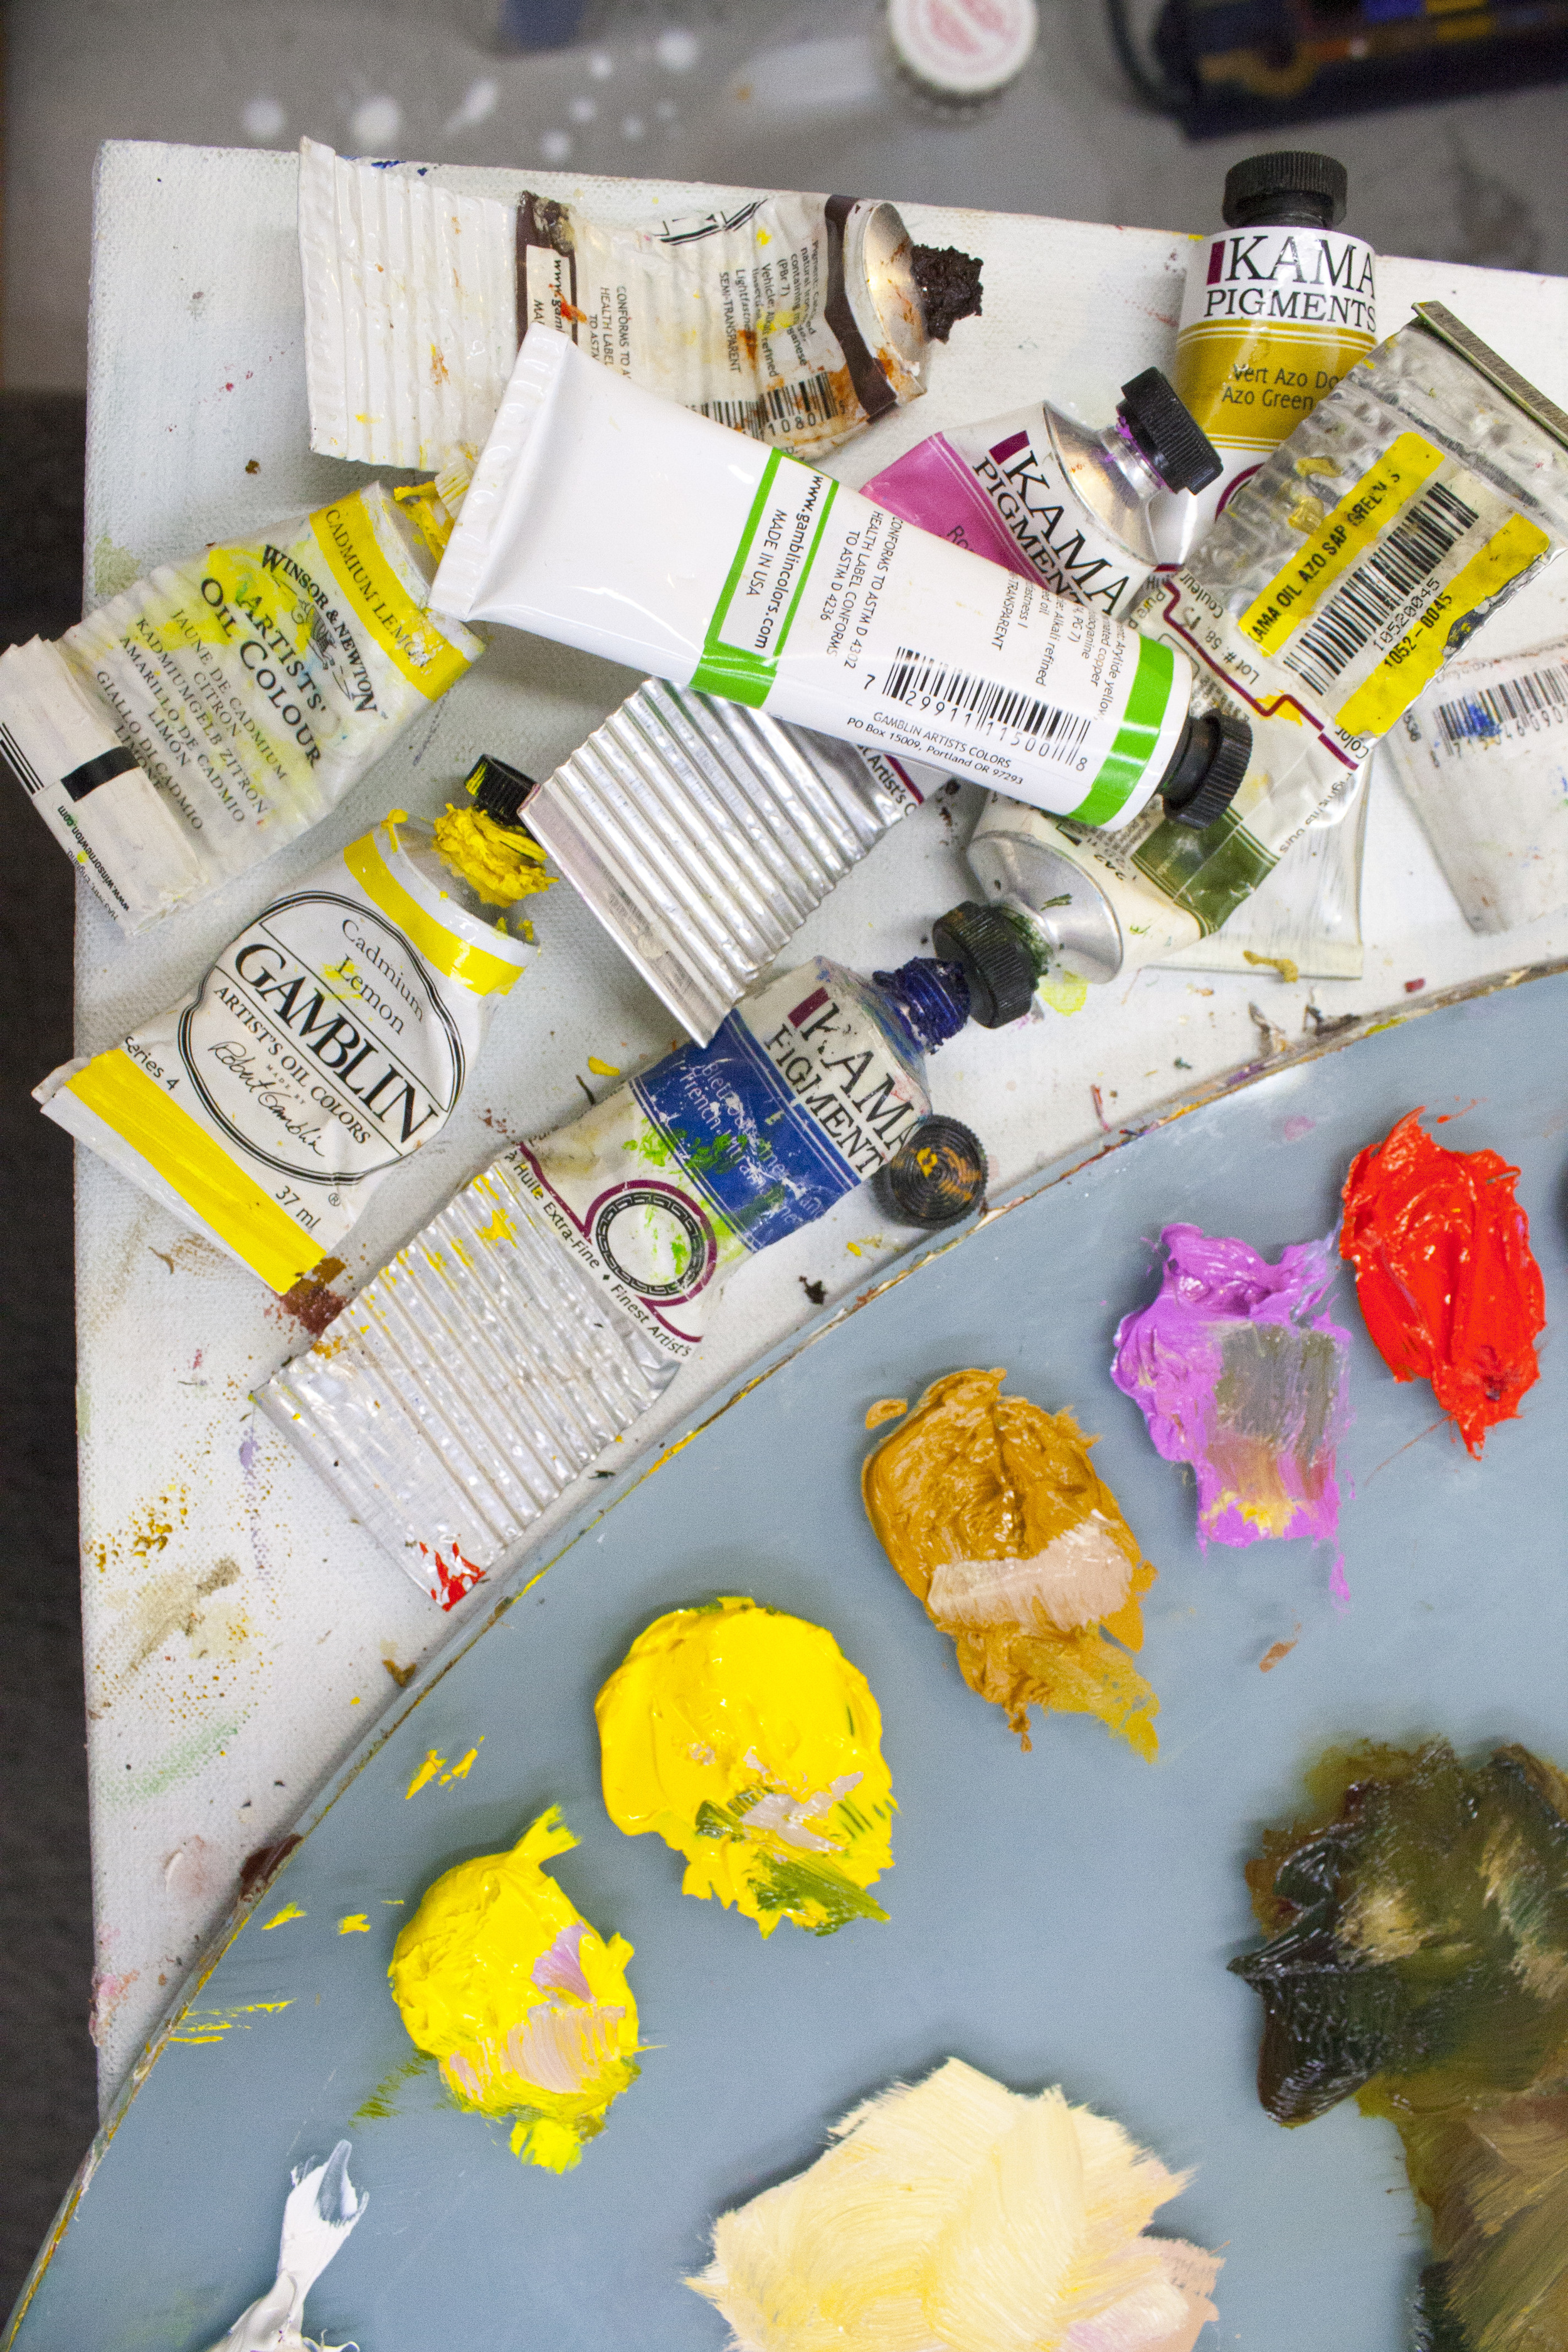 These days Dom favours montreal-based Kama pigments for her paintings.